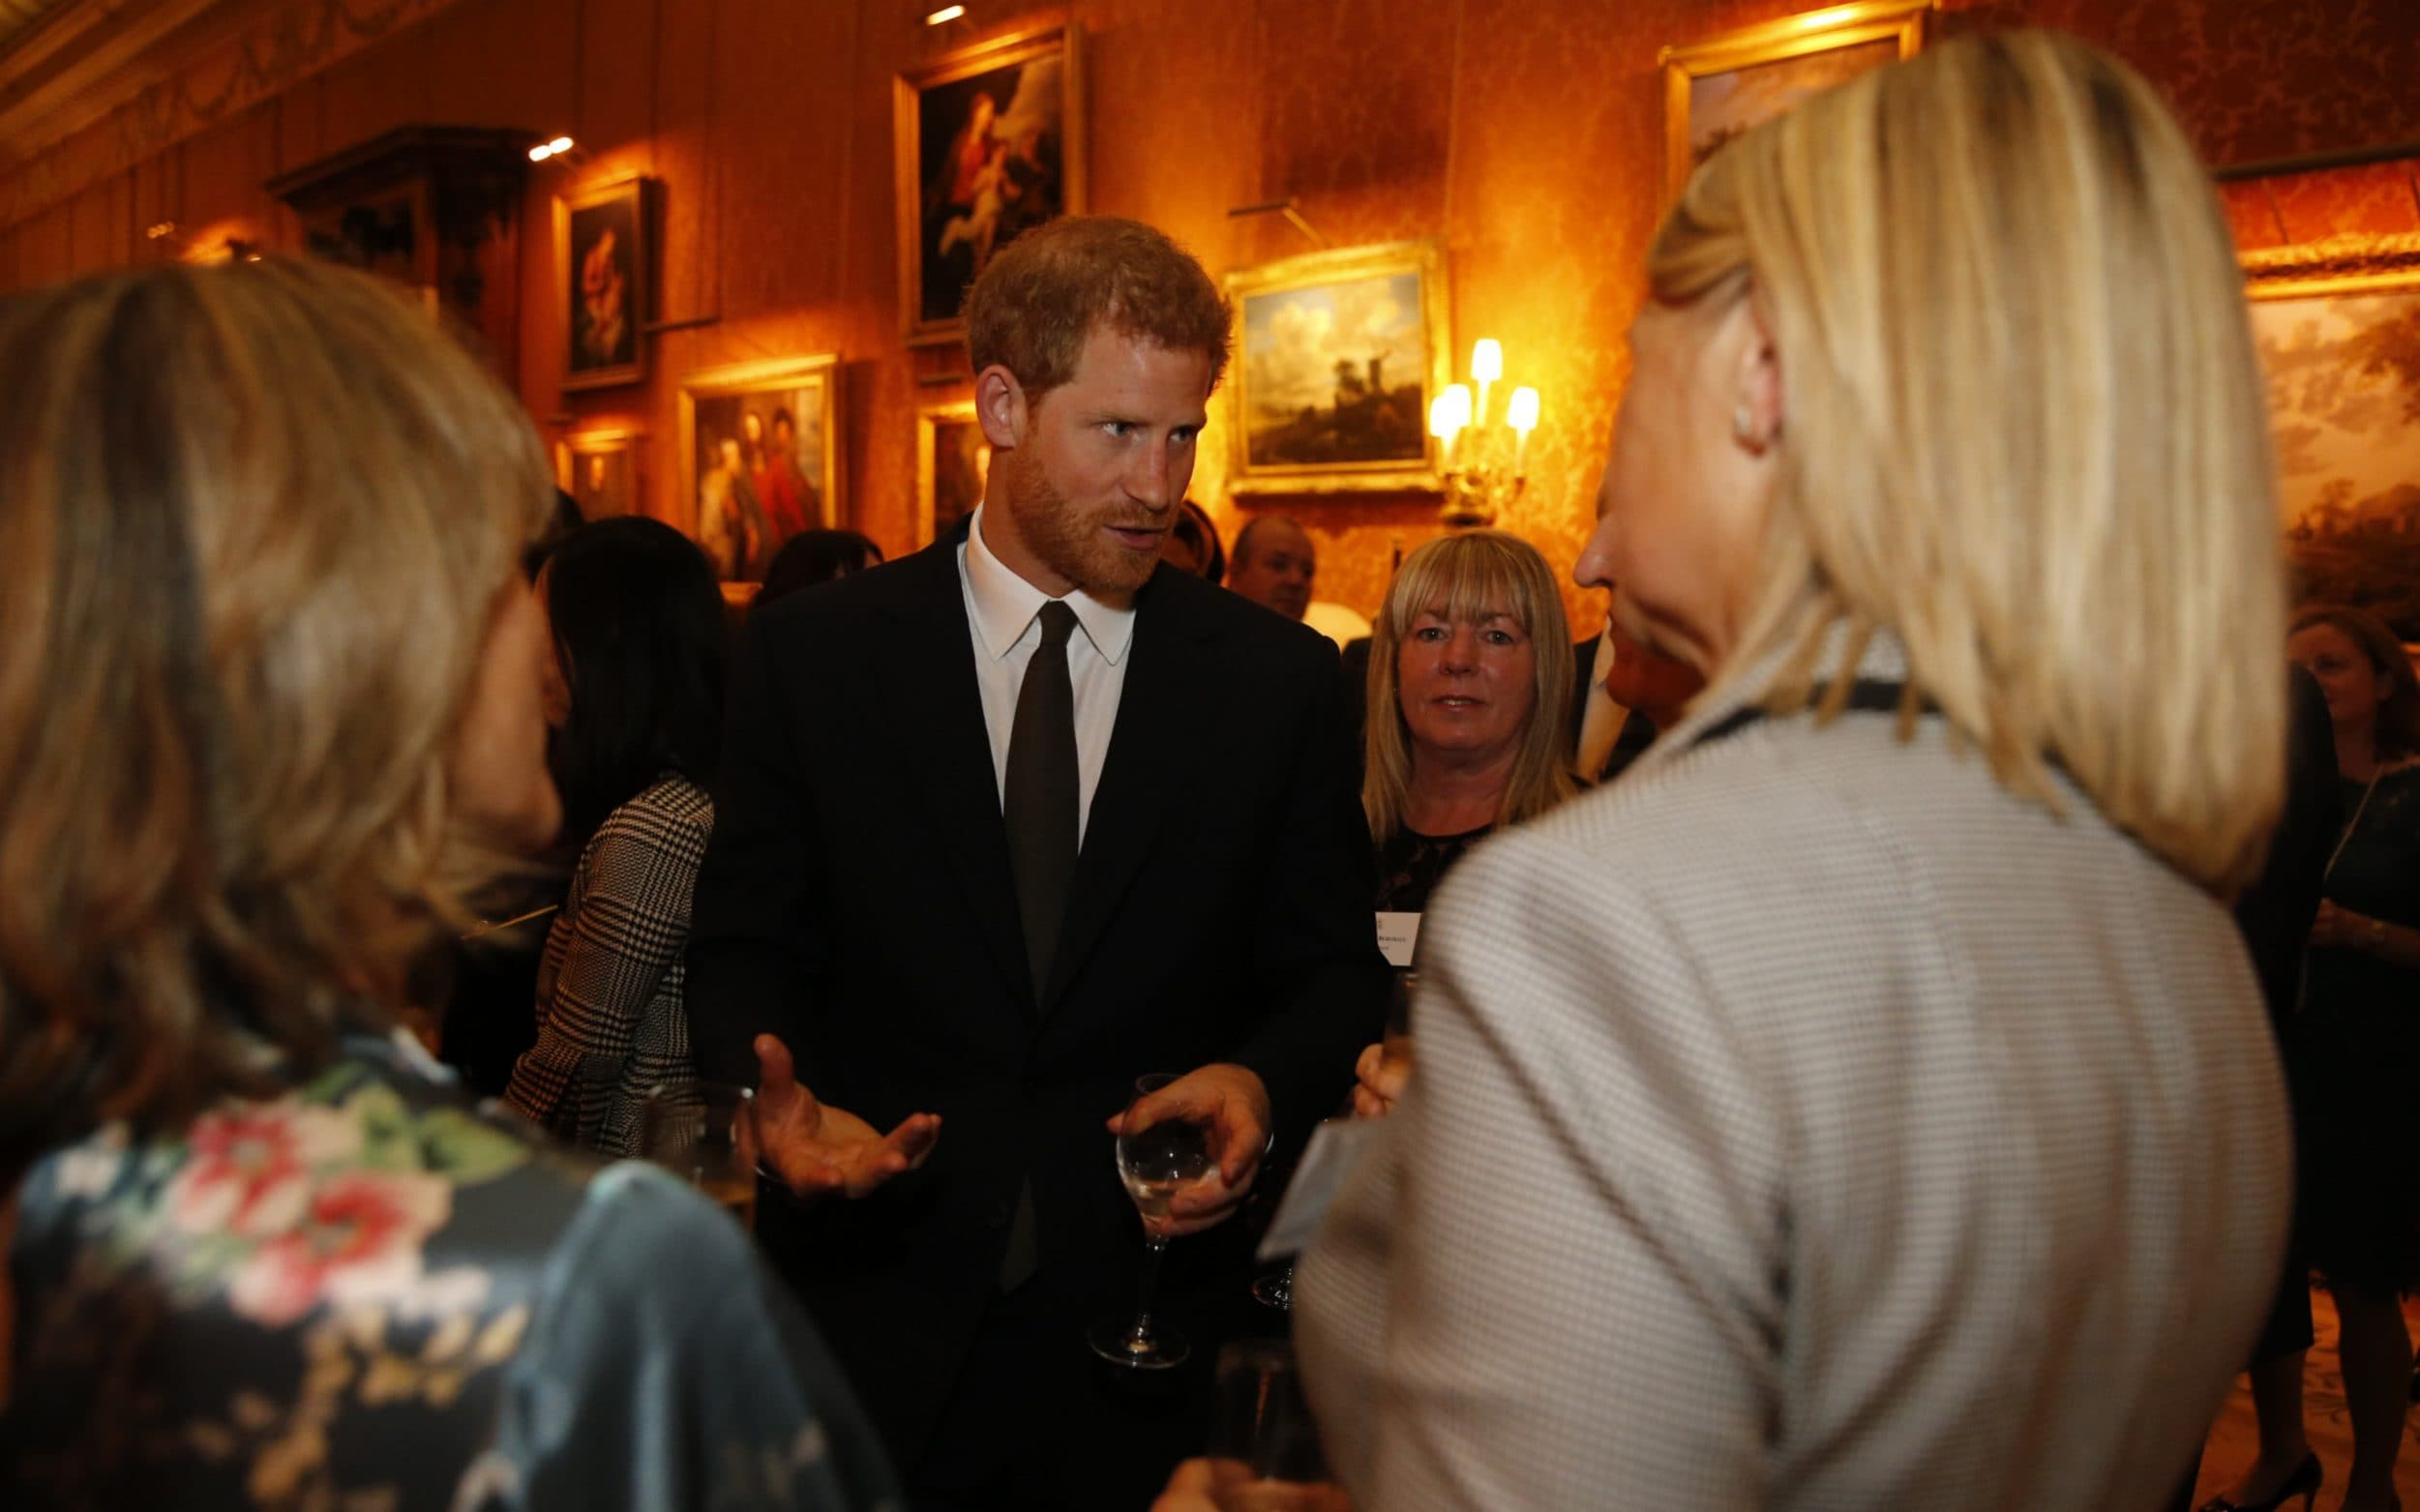 Prince Harry also attended the event